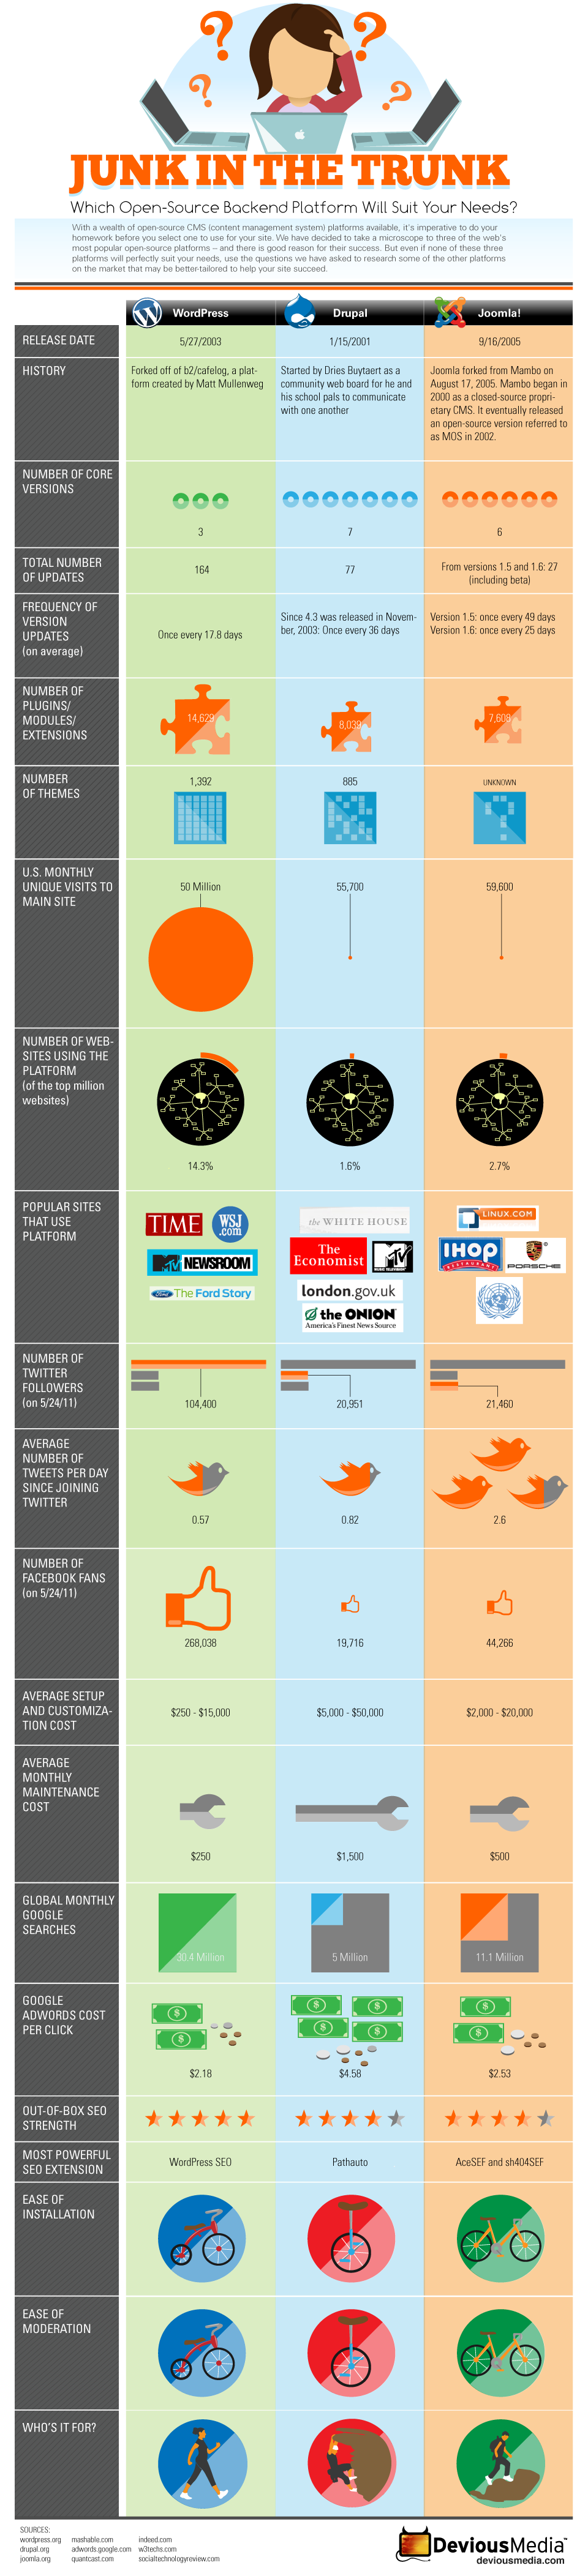 Infografika: WordPress vs Drupal vs Joomla